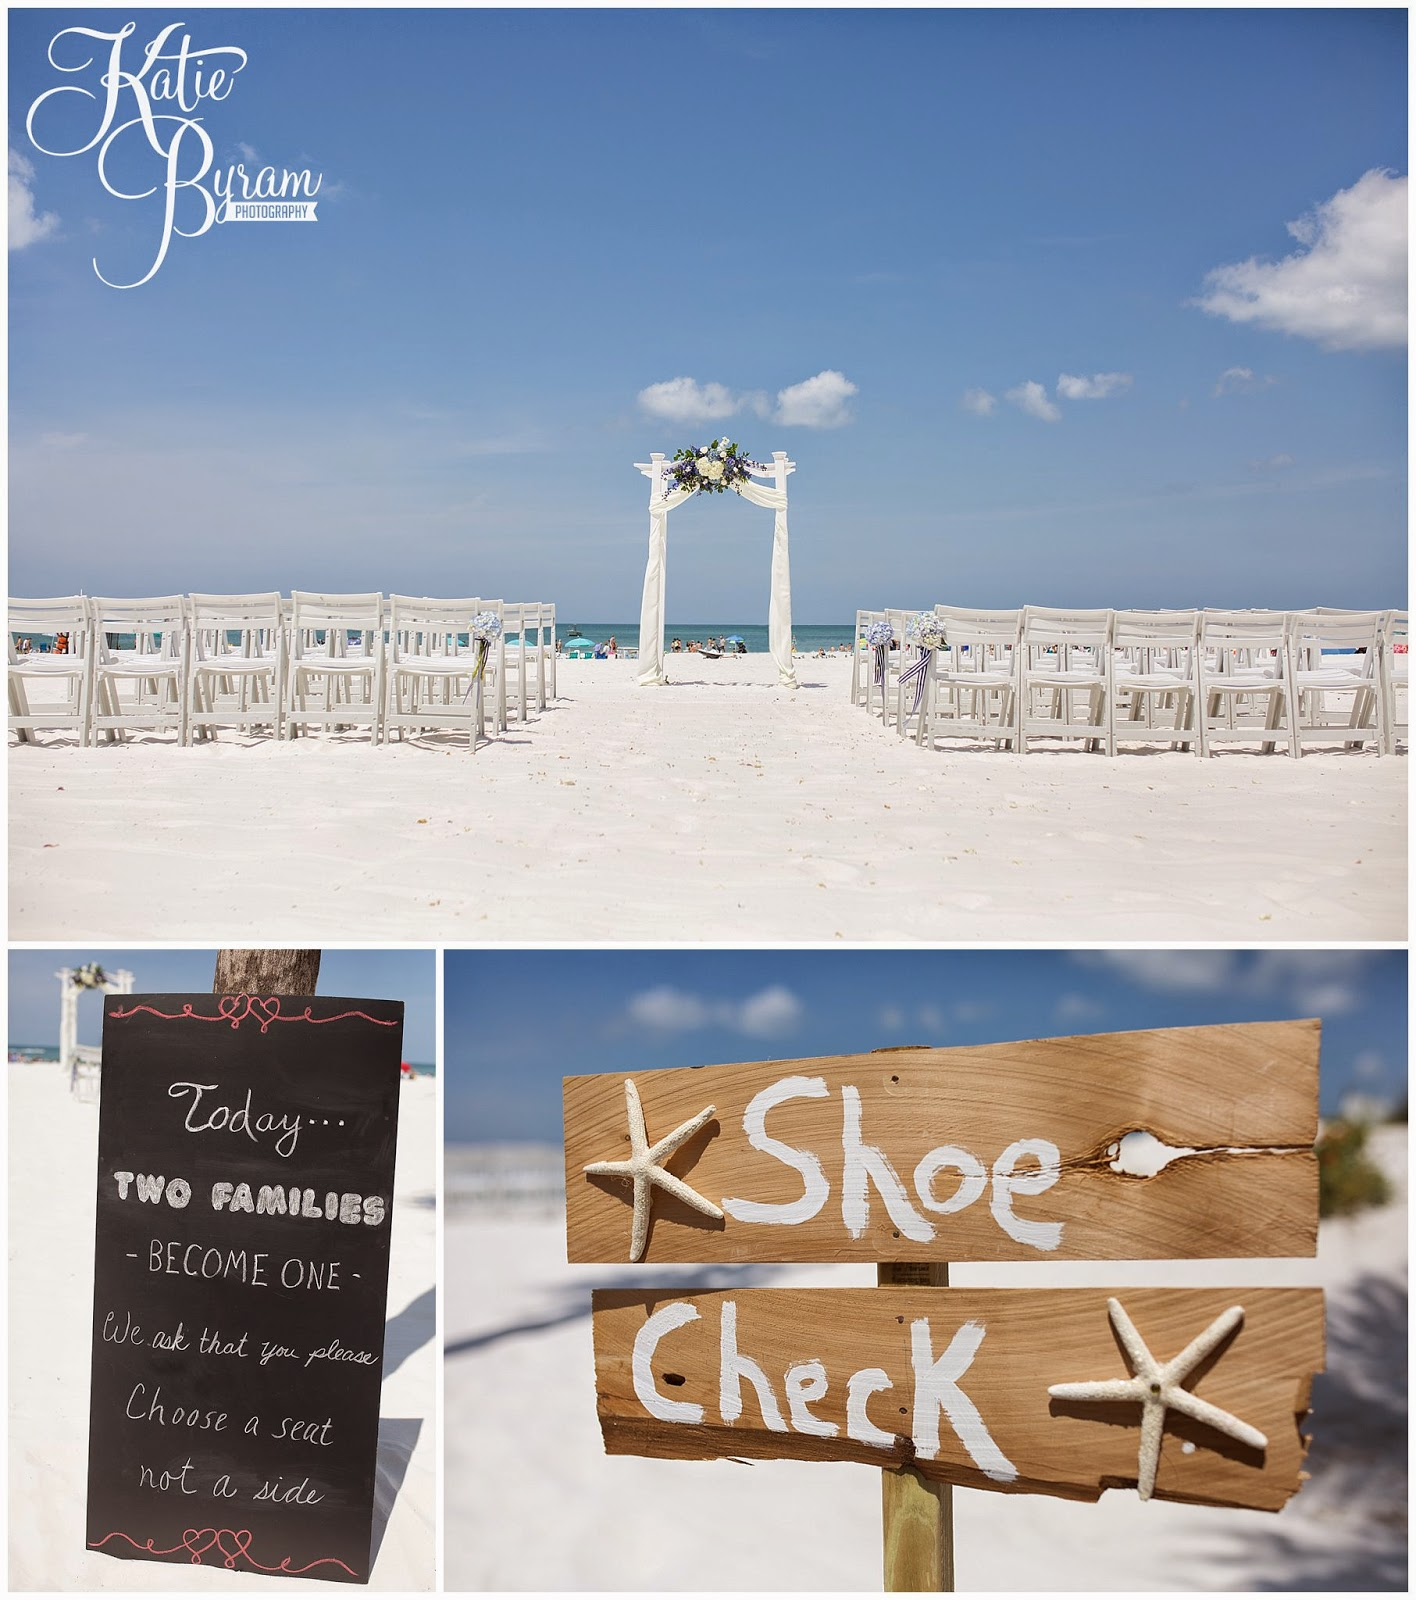 wedding on the beach, beach wedding, shoe check, two families become one, destination wedding, clearwater beach wedding, hilton clearwater beach wedding, katie byram photography, florida wedding